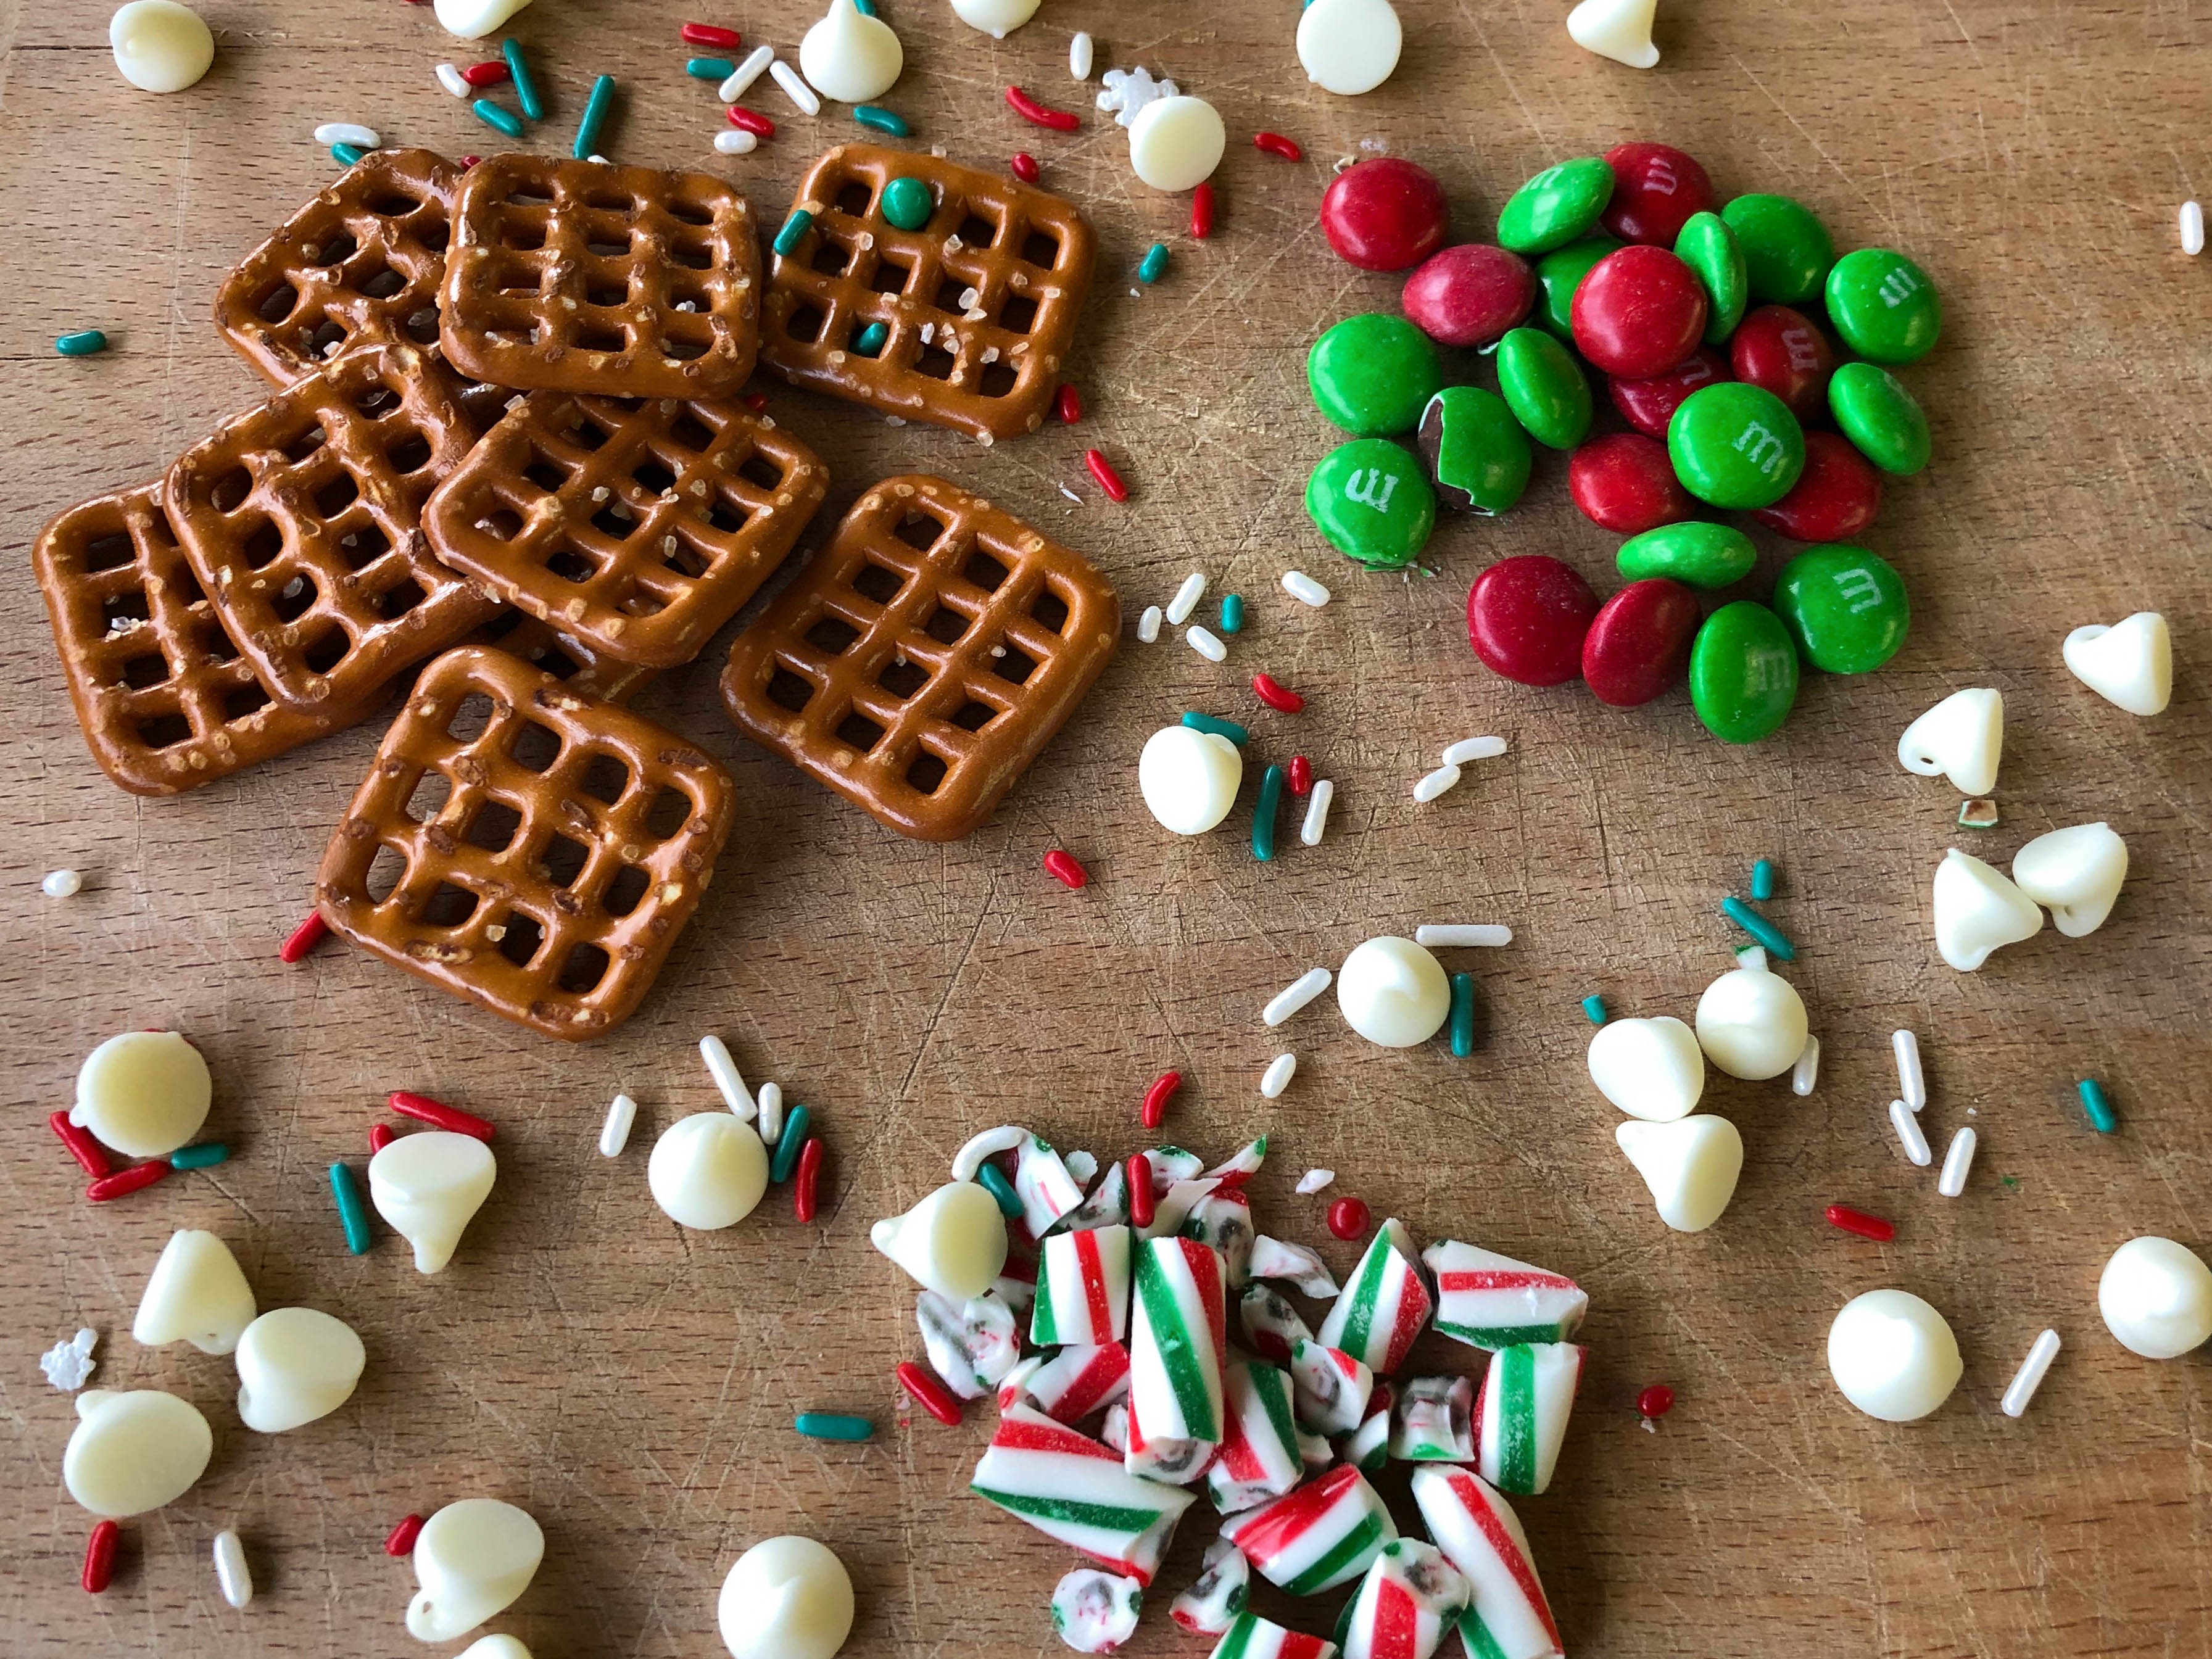 Pretzels, M&Ms and white chocolate chips on a wooden surface.